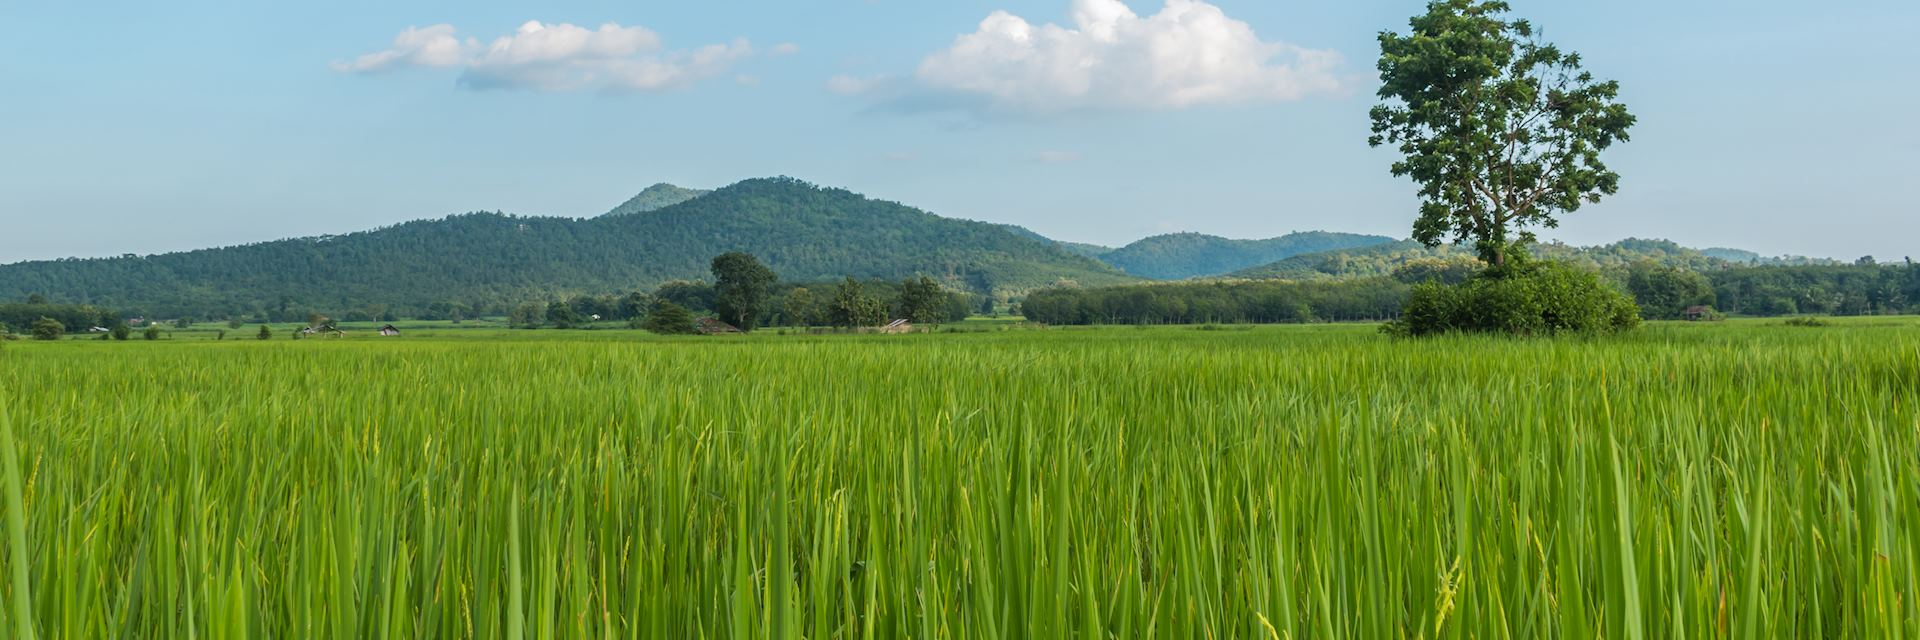 Paddy field in Loei Province